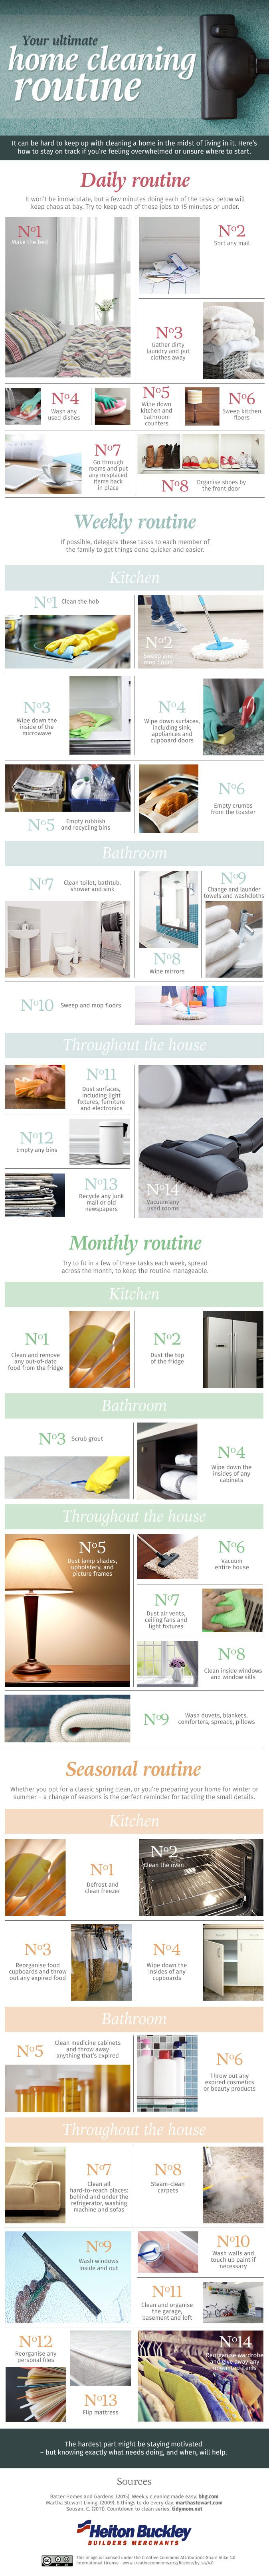 The Ultimate cleaning routine | The Caregiver Space